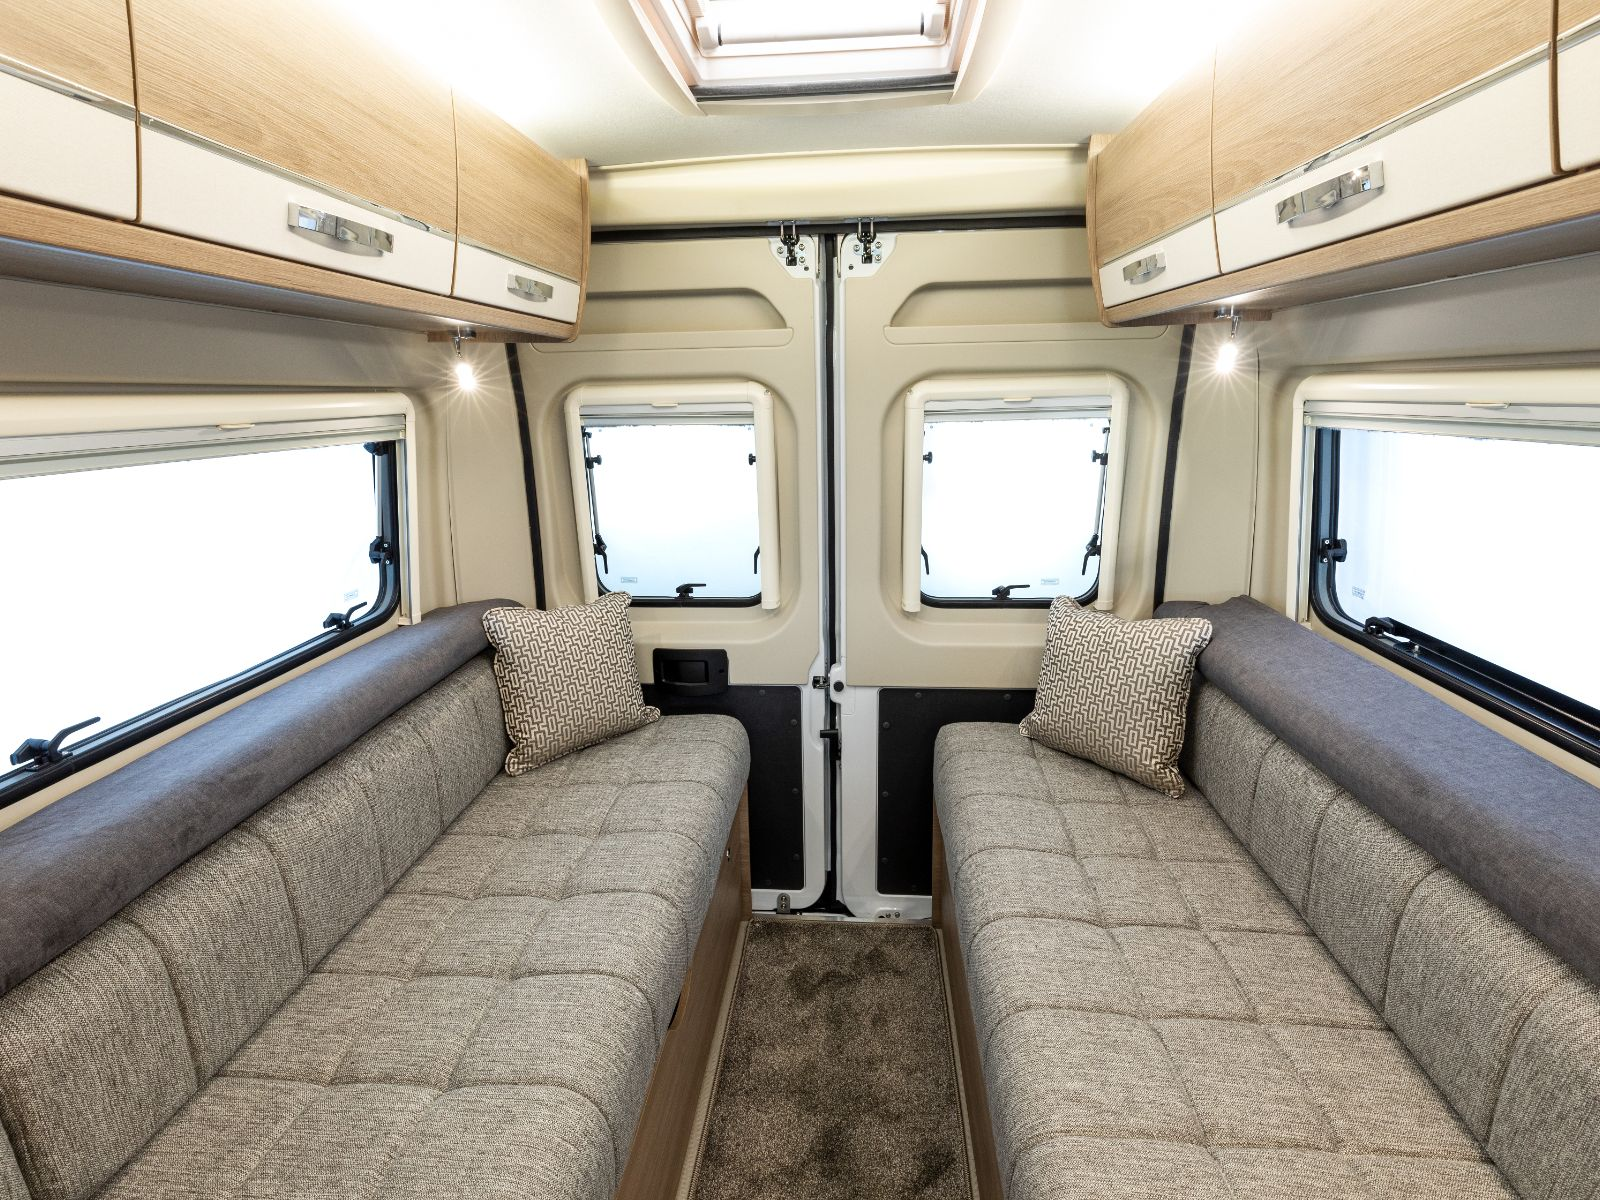 Kensington Campervan Lounge Area With Two Sofas'